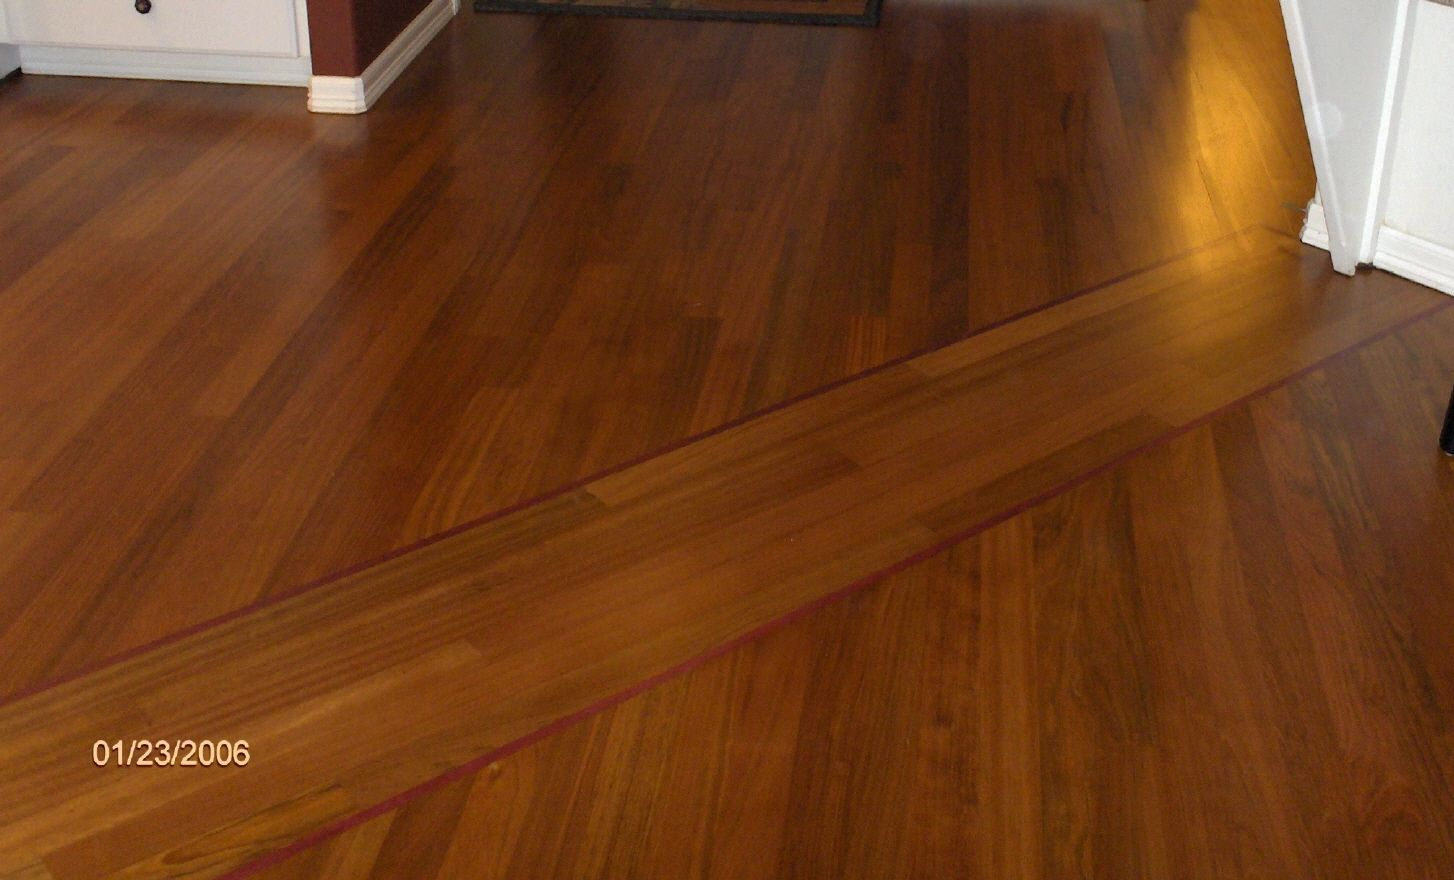 Transition Between Old And New Hardwood Floors